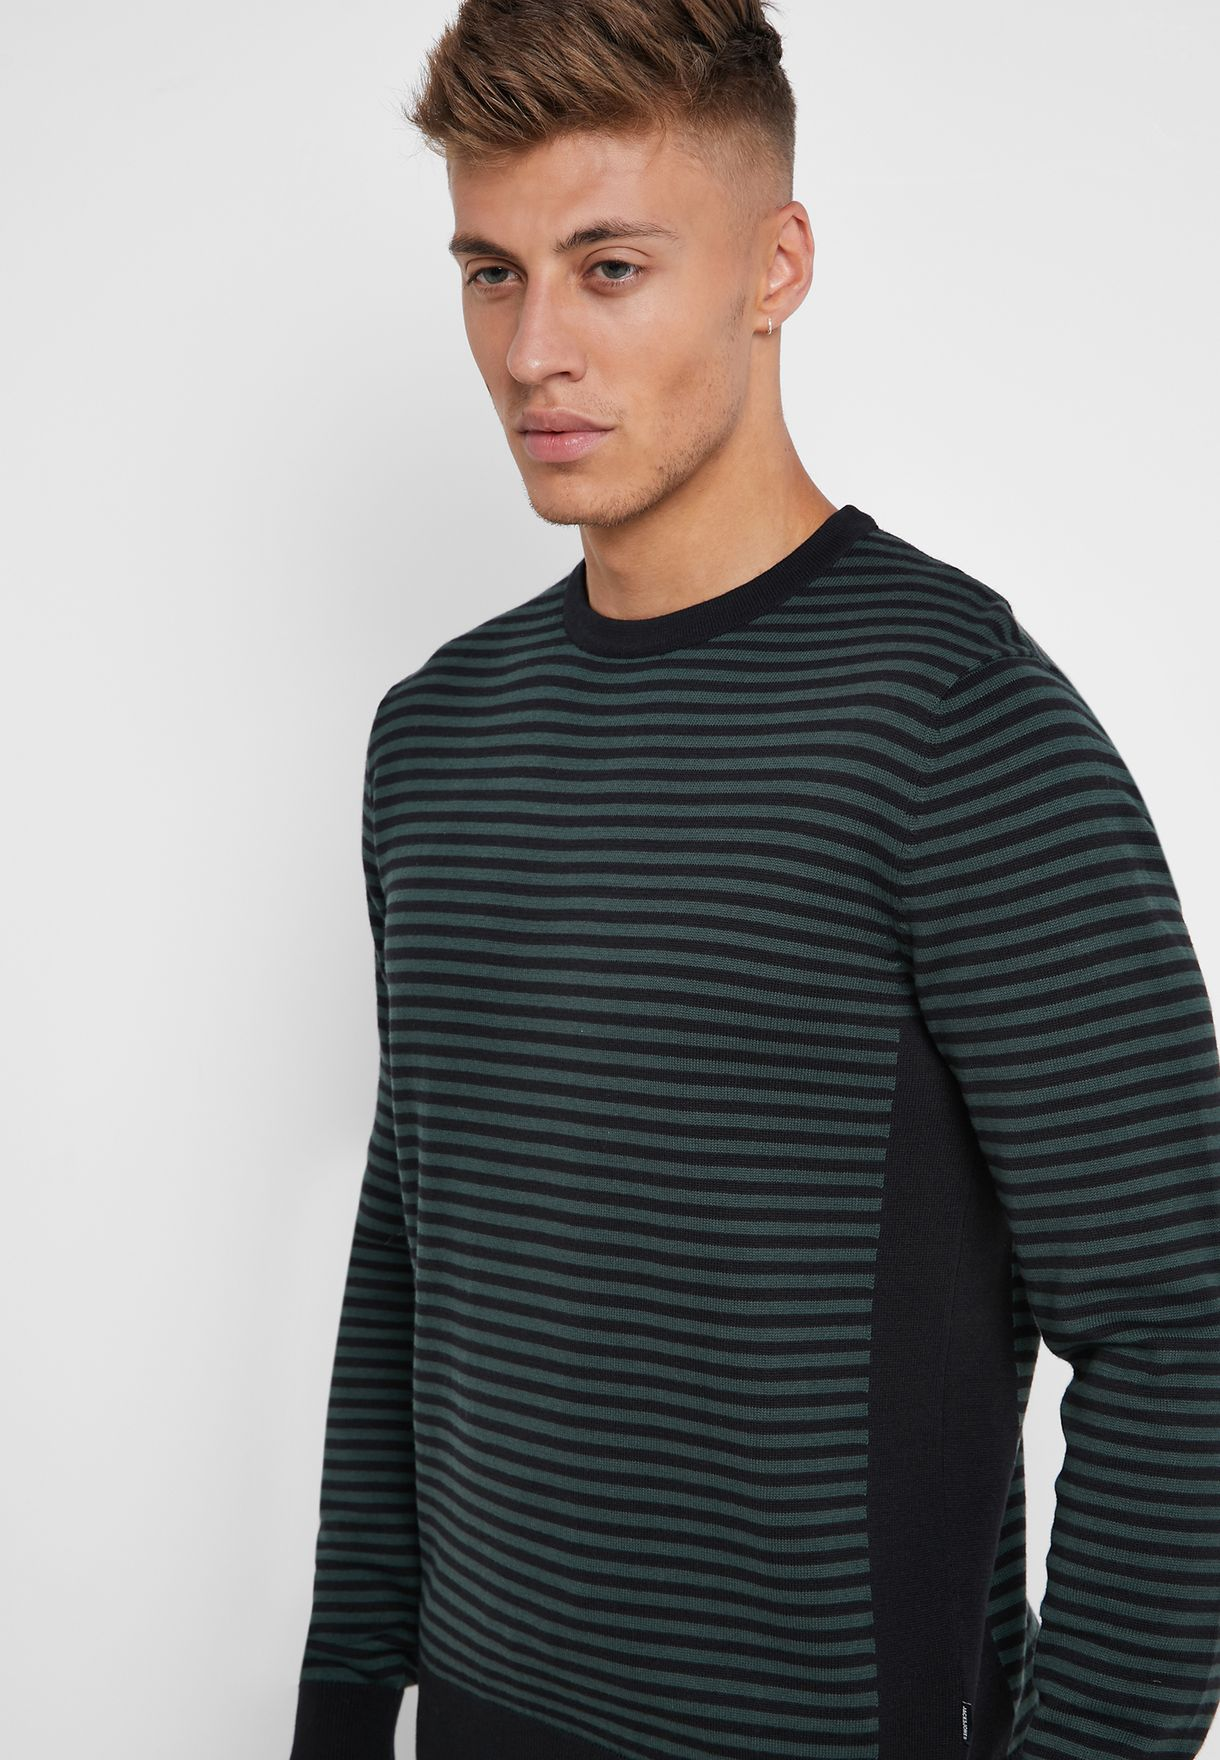 Raw Knitted Sweater